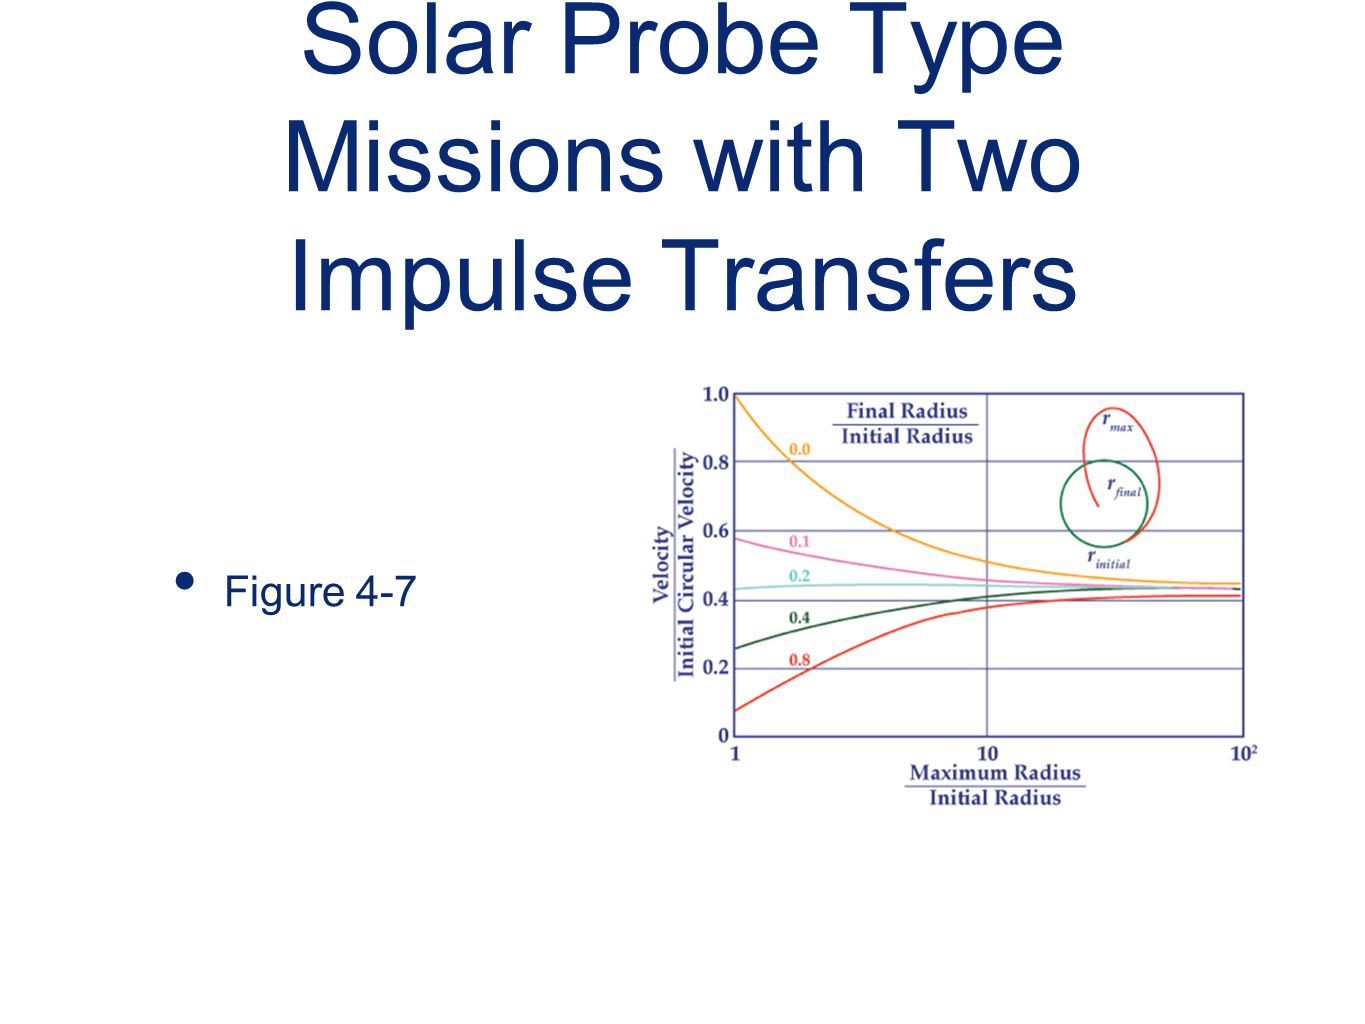 Solar Probe Type Missions with Two Impulse Transfers